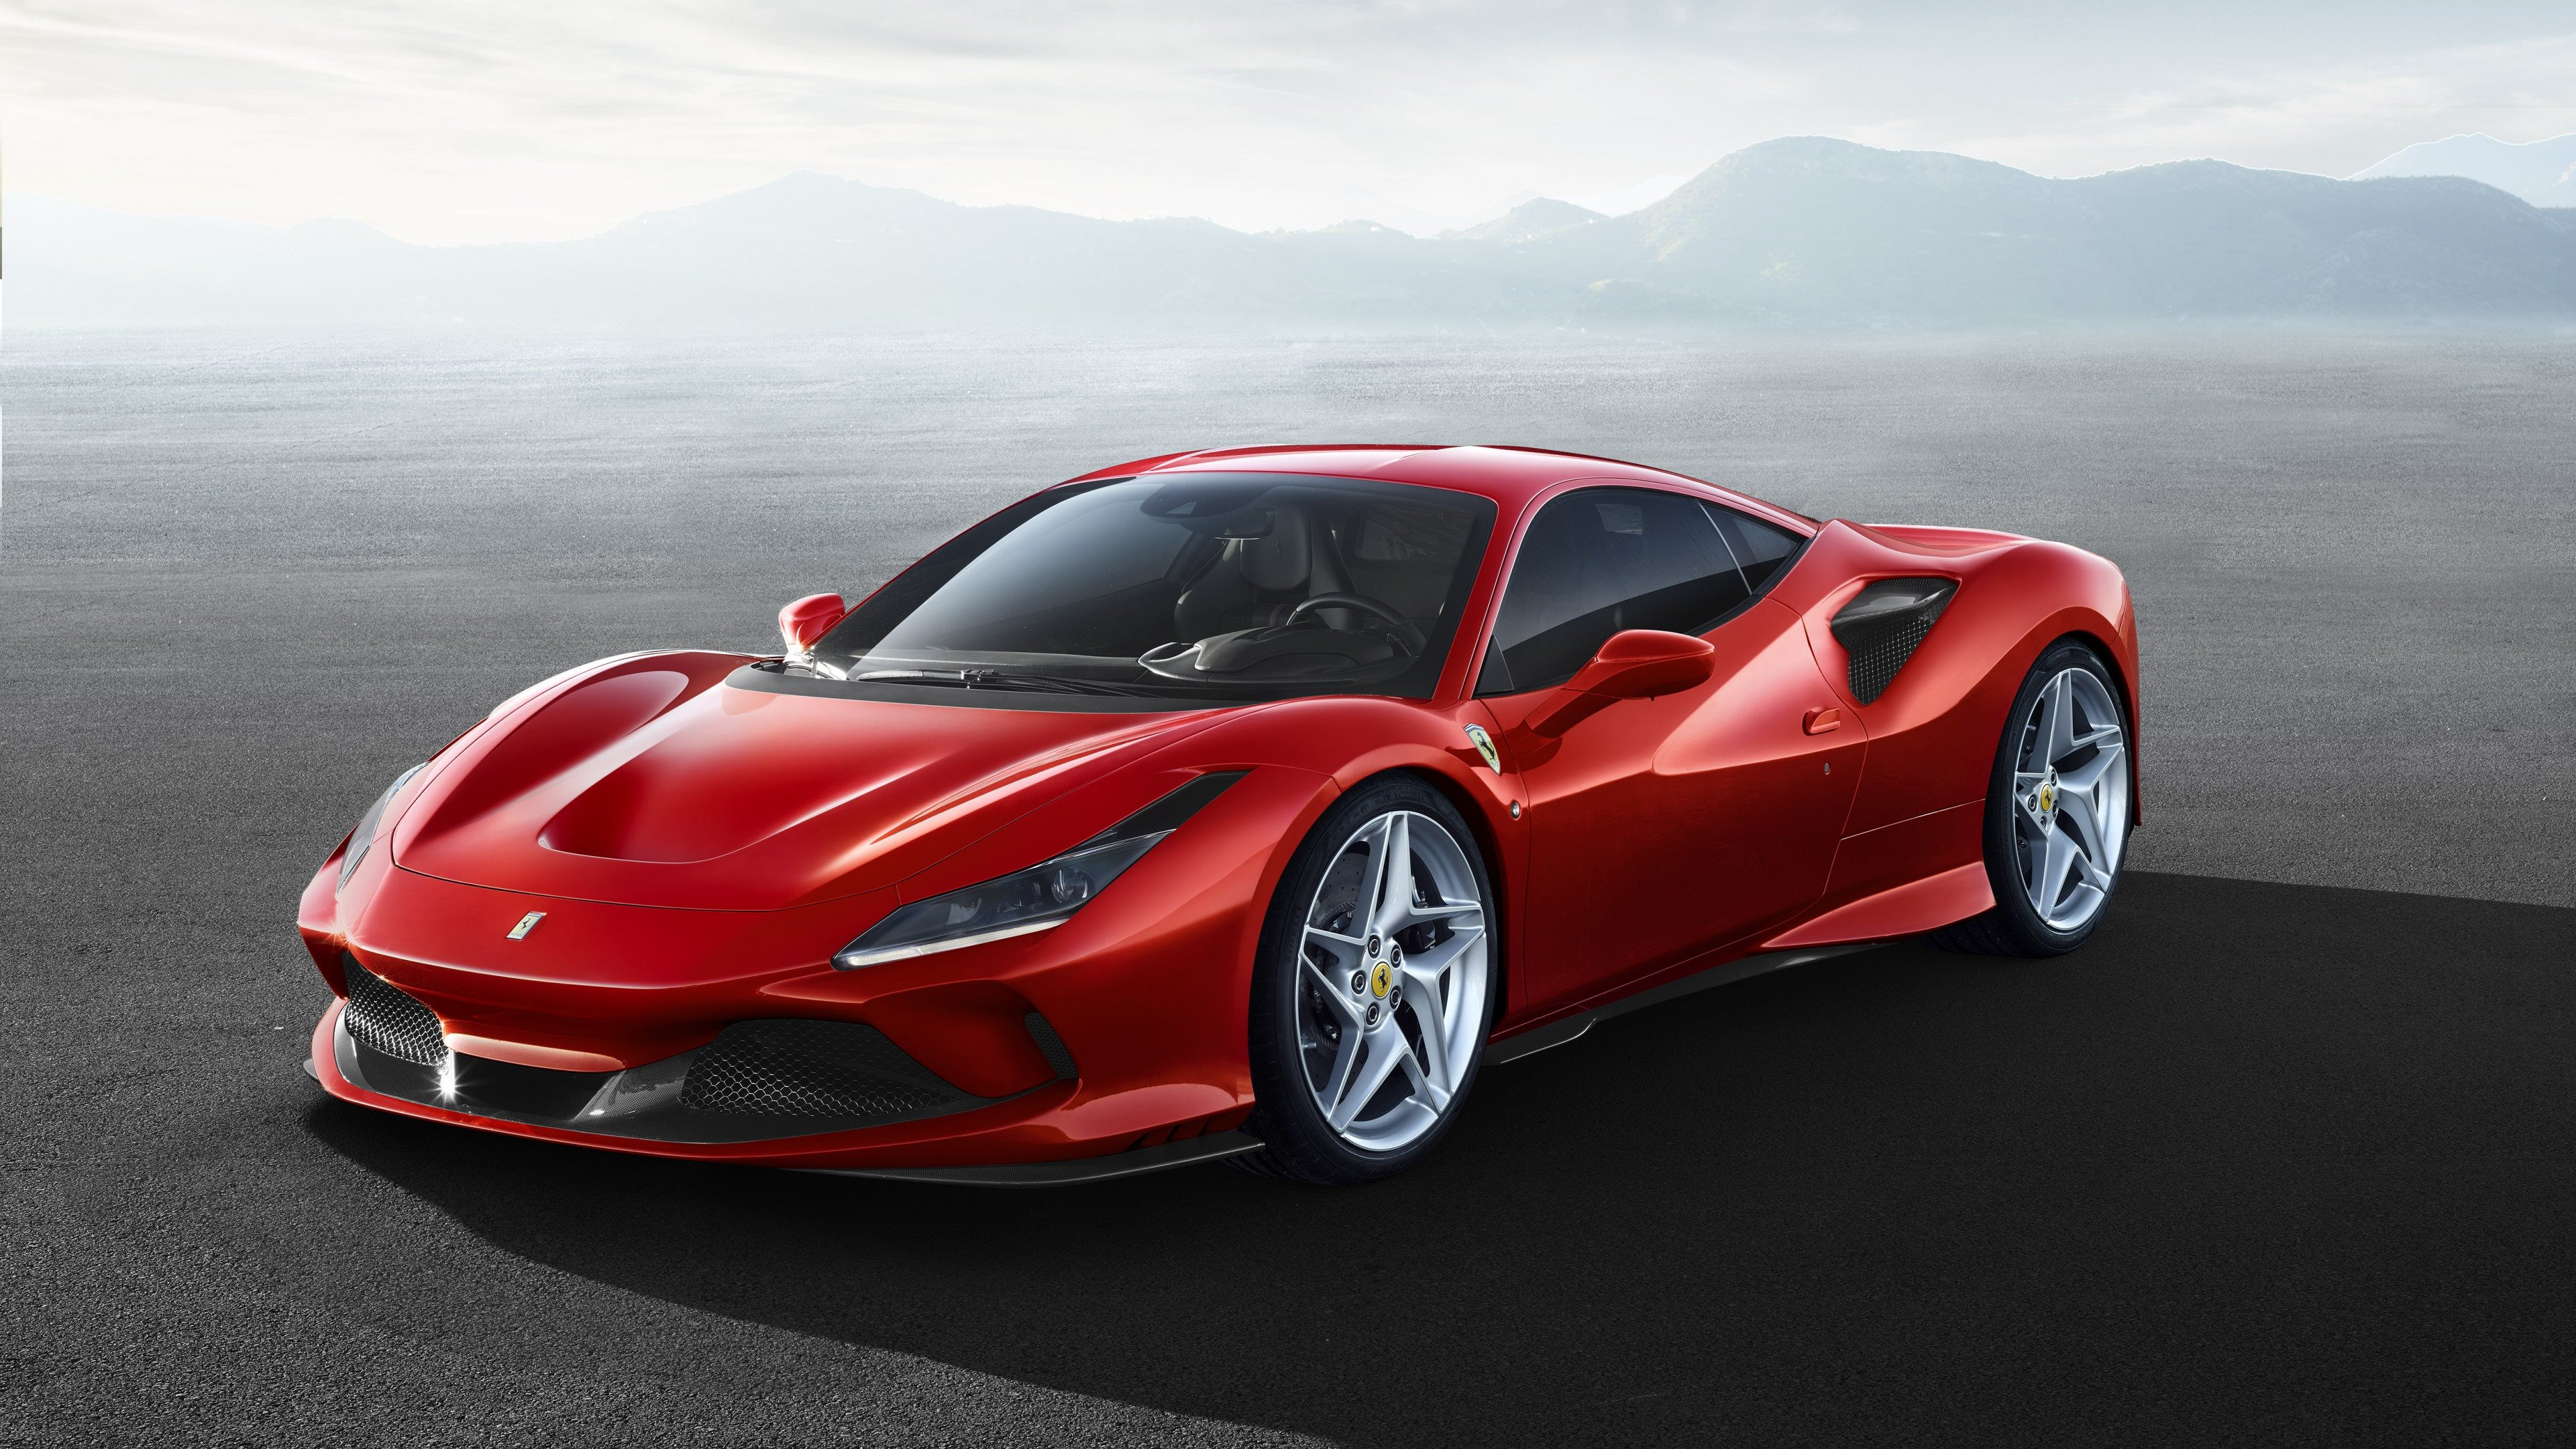 Ferrari F8 Tributo wallpaper 3840x2160